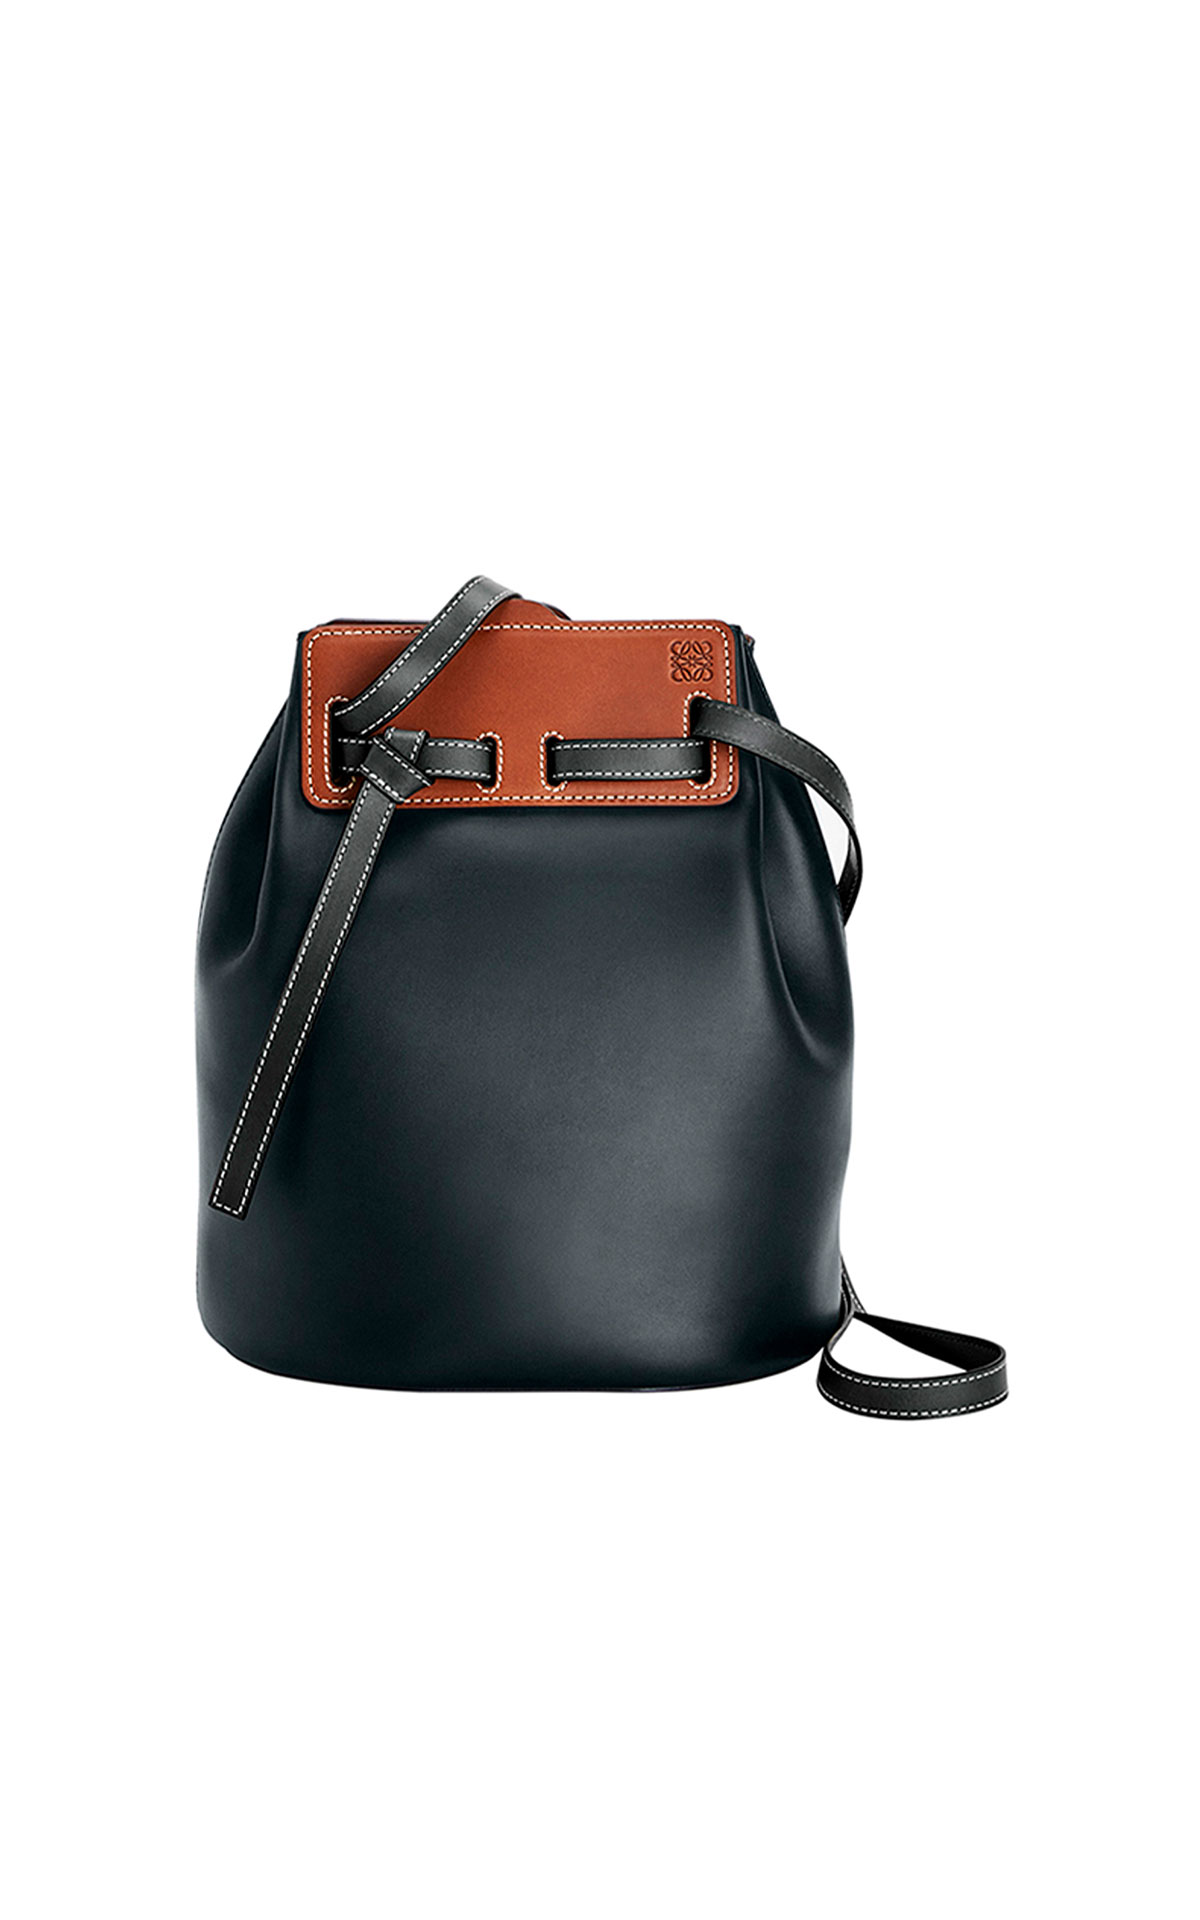 LOEWE Lazo Bucket Bag in Black at The Bicester Village Shopping Collection